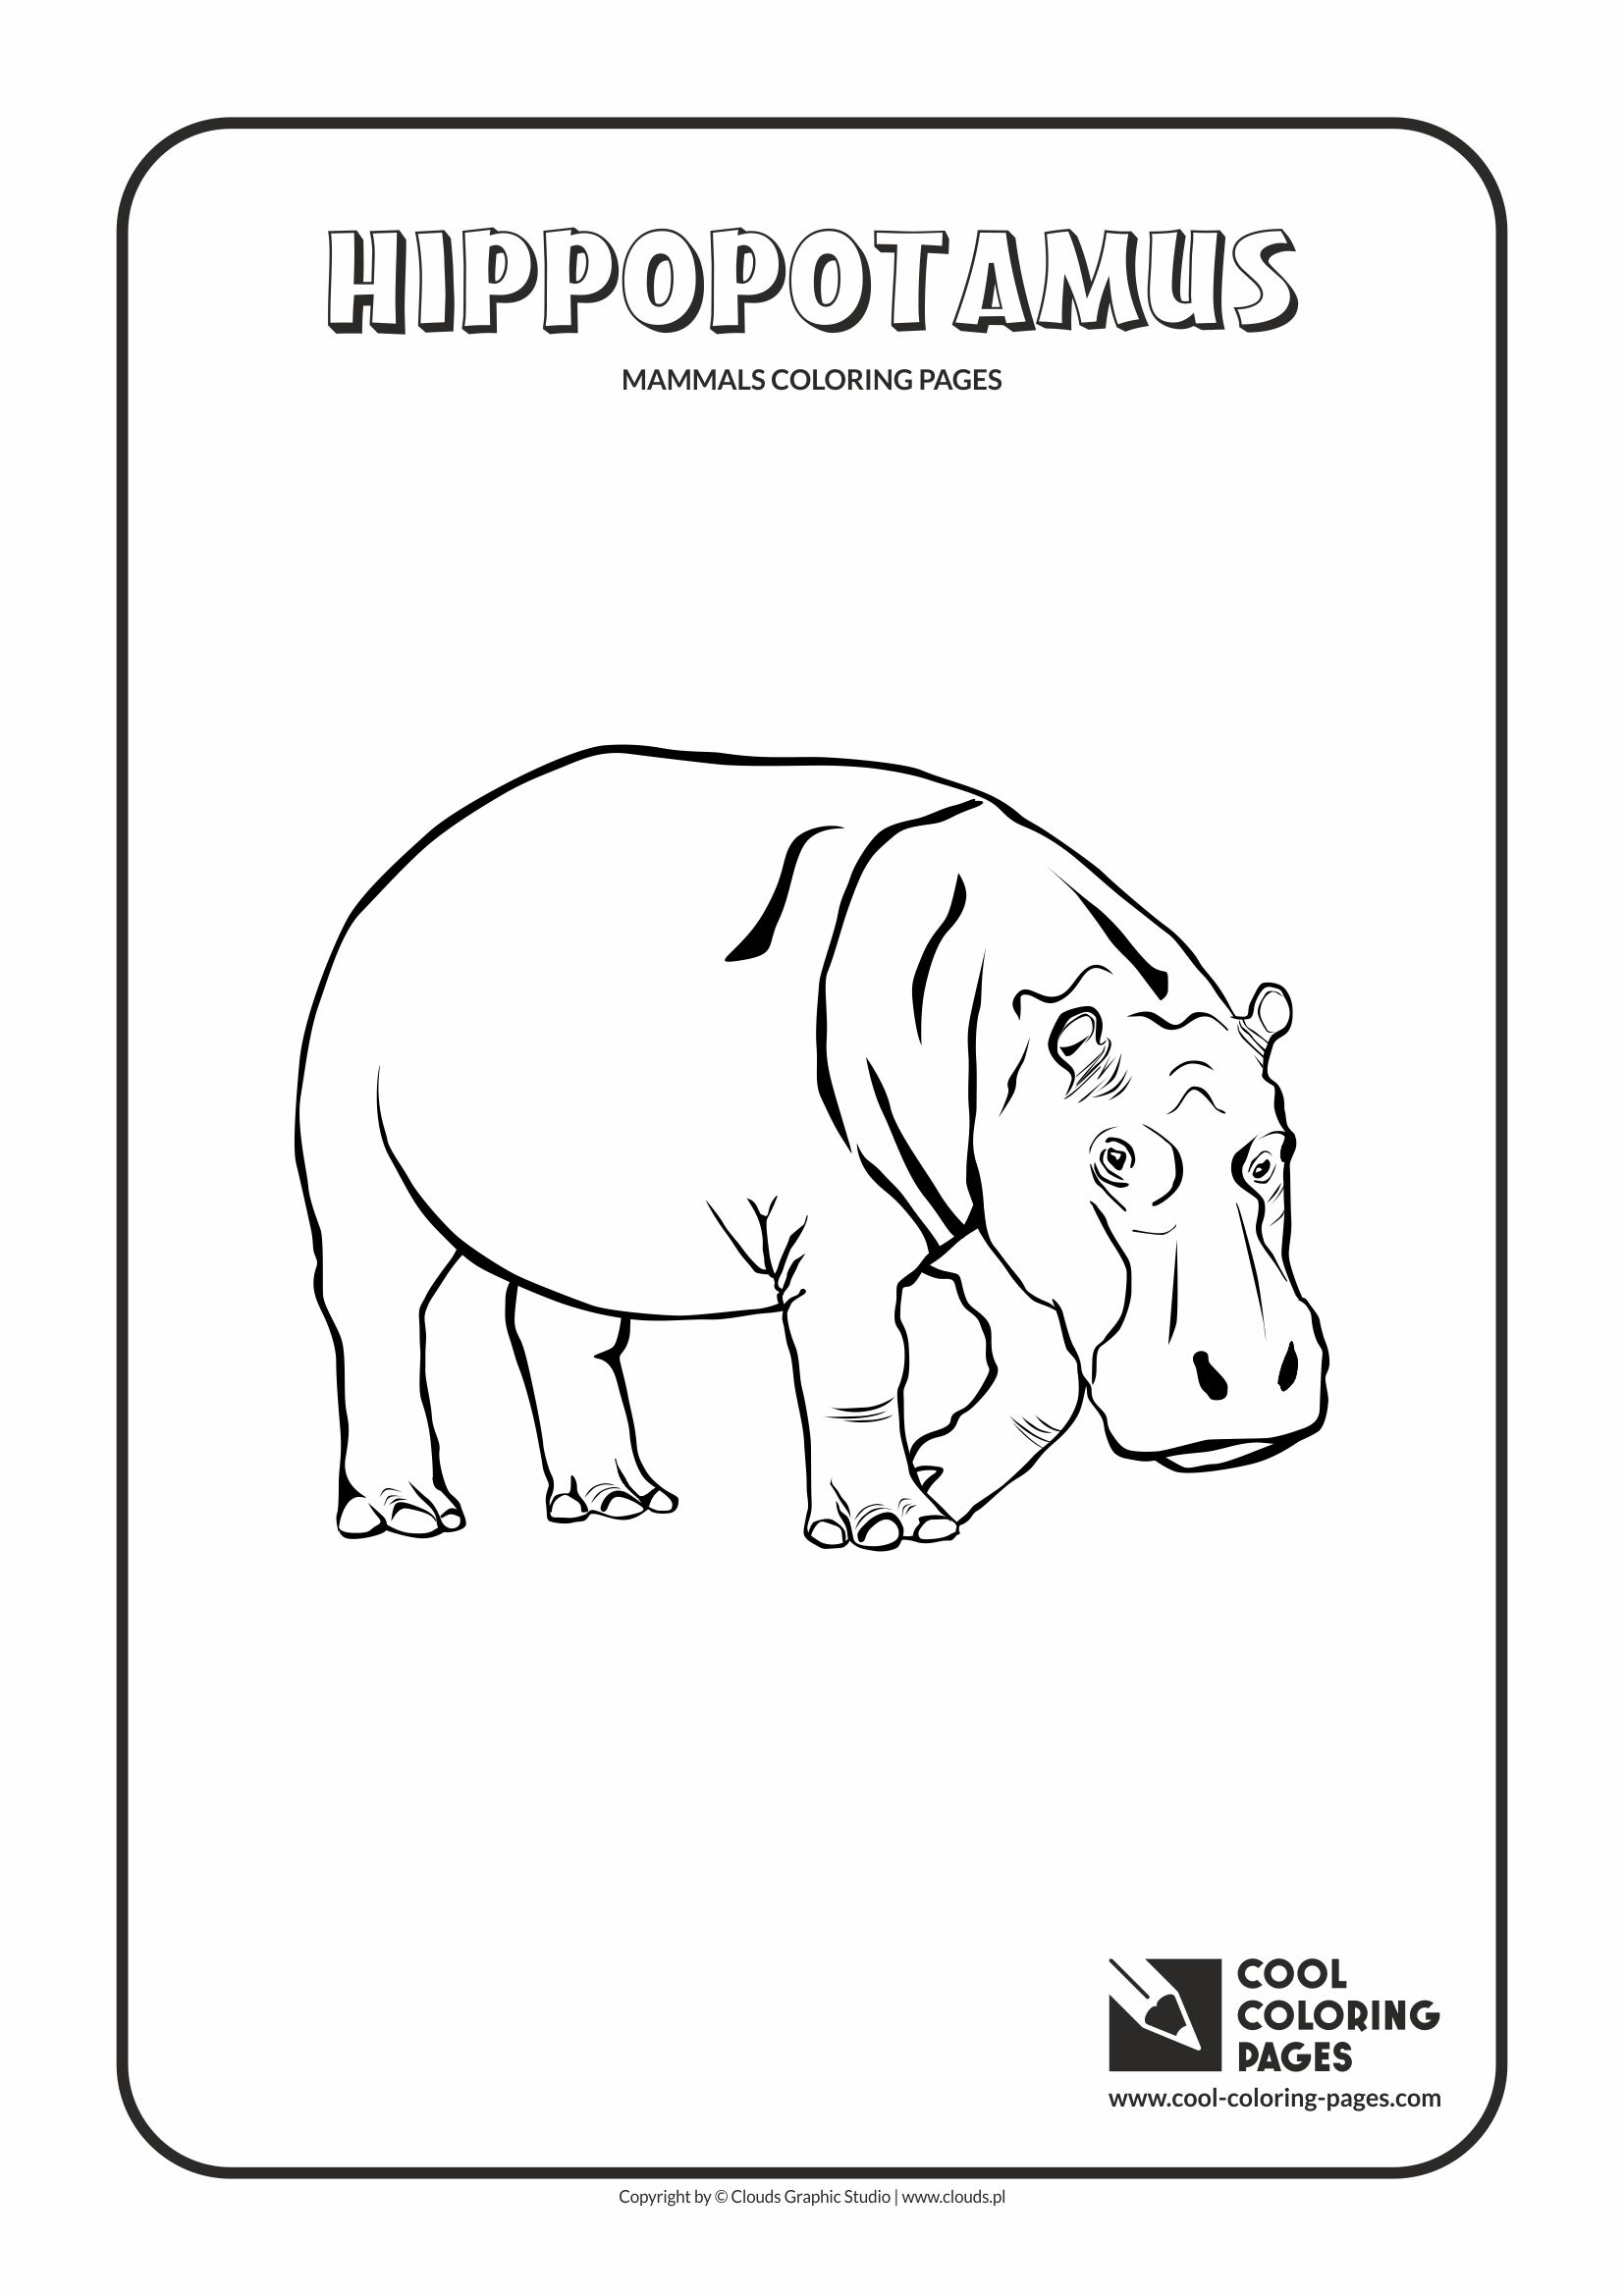 Hippopotamus hippo coloring page animals town animals color - Cool Coloring Pages Animals Hippopotamus Coloring Page With